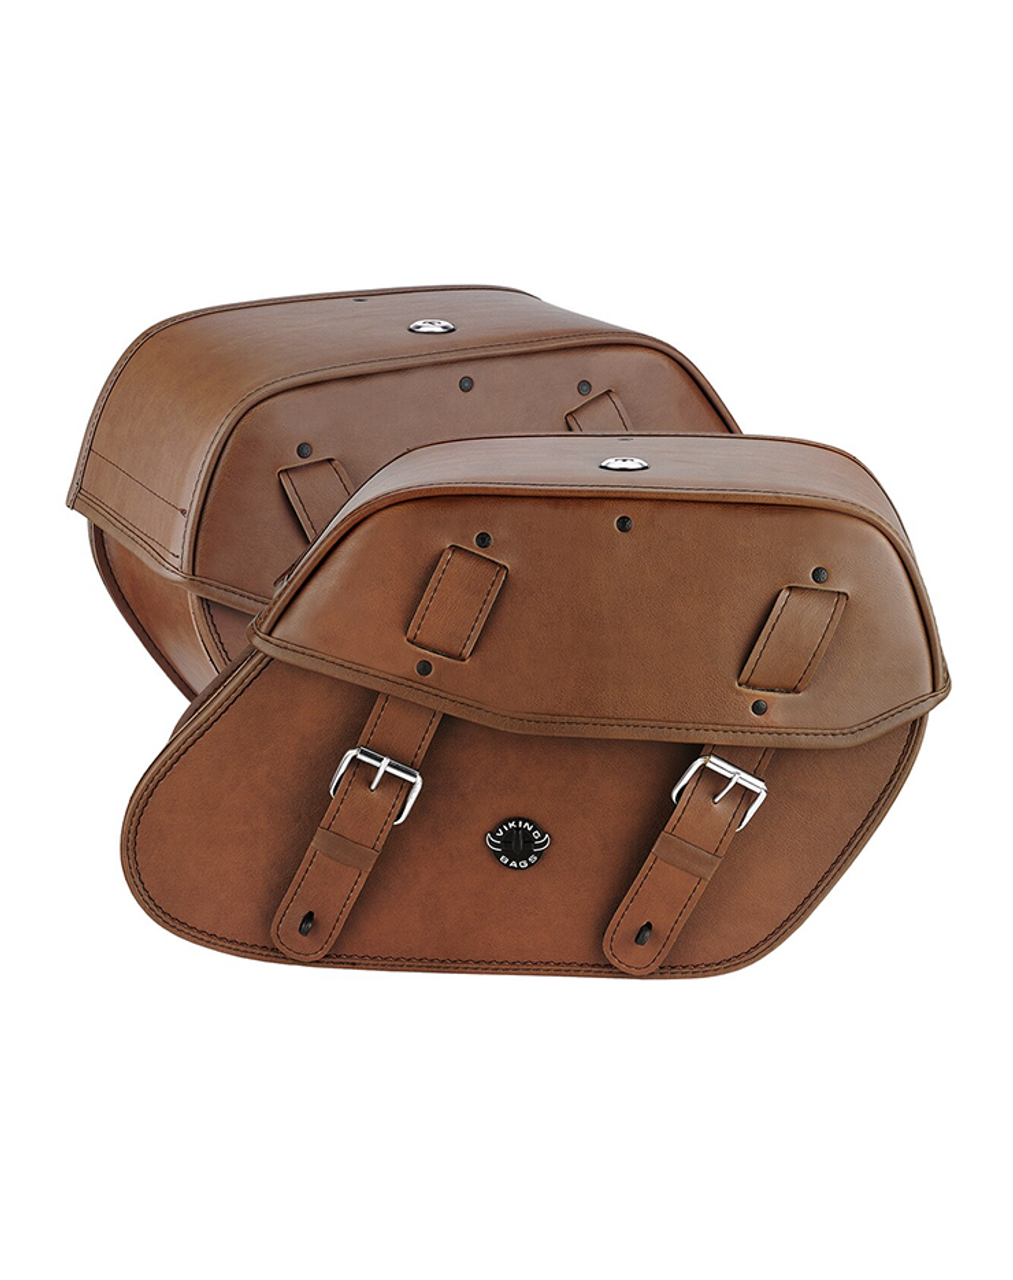 Viking Odin Brown Large Motorcycle Saddlebags For Harley Softail Fatboy FLSTF Both Bags View